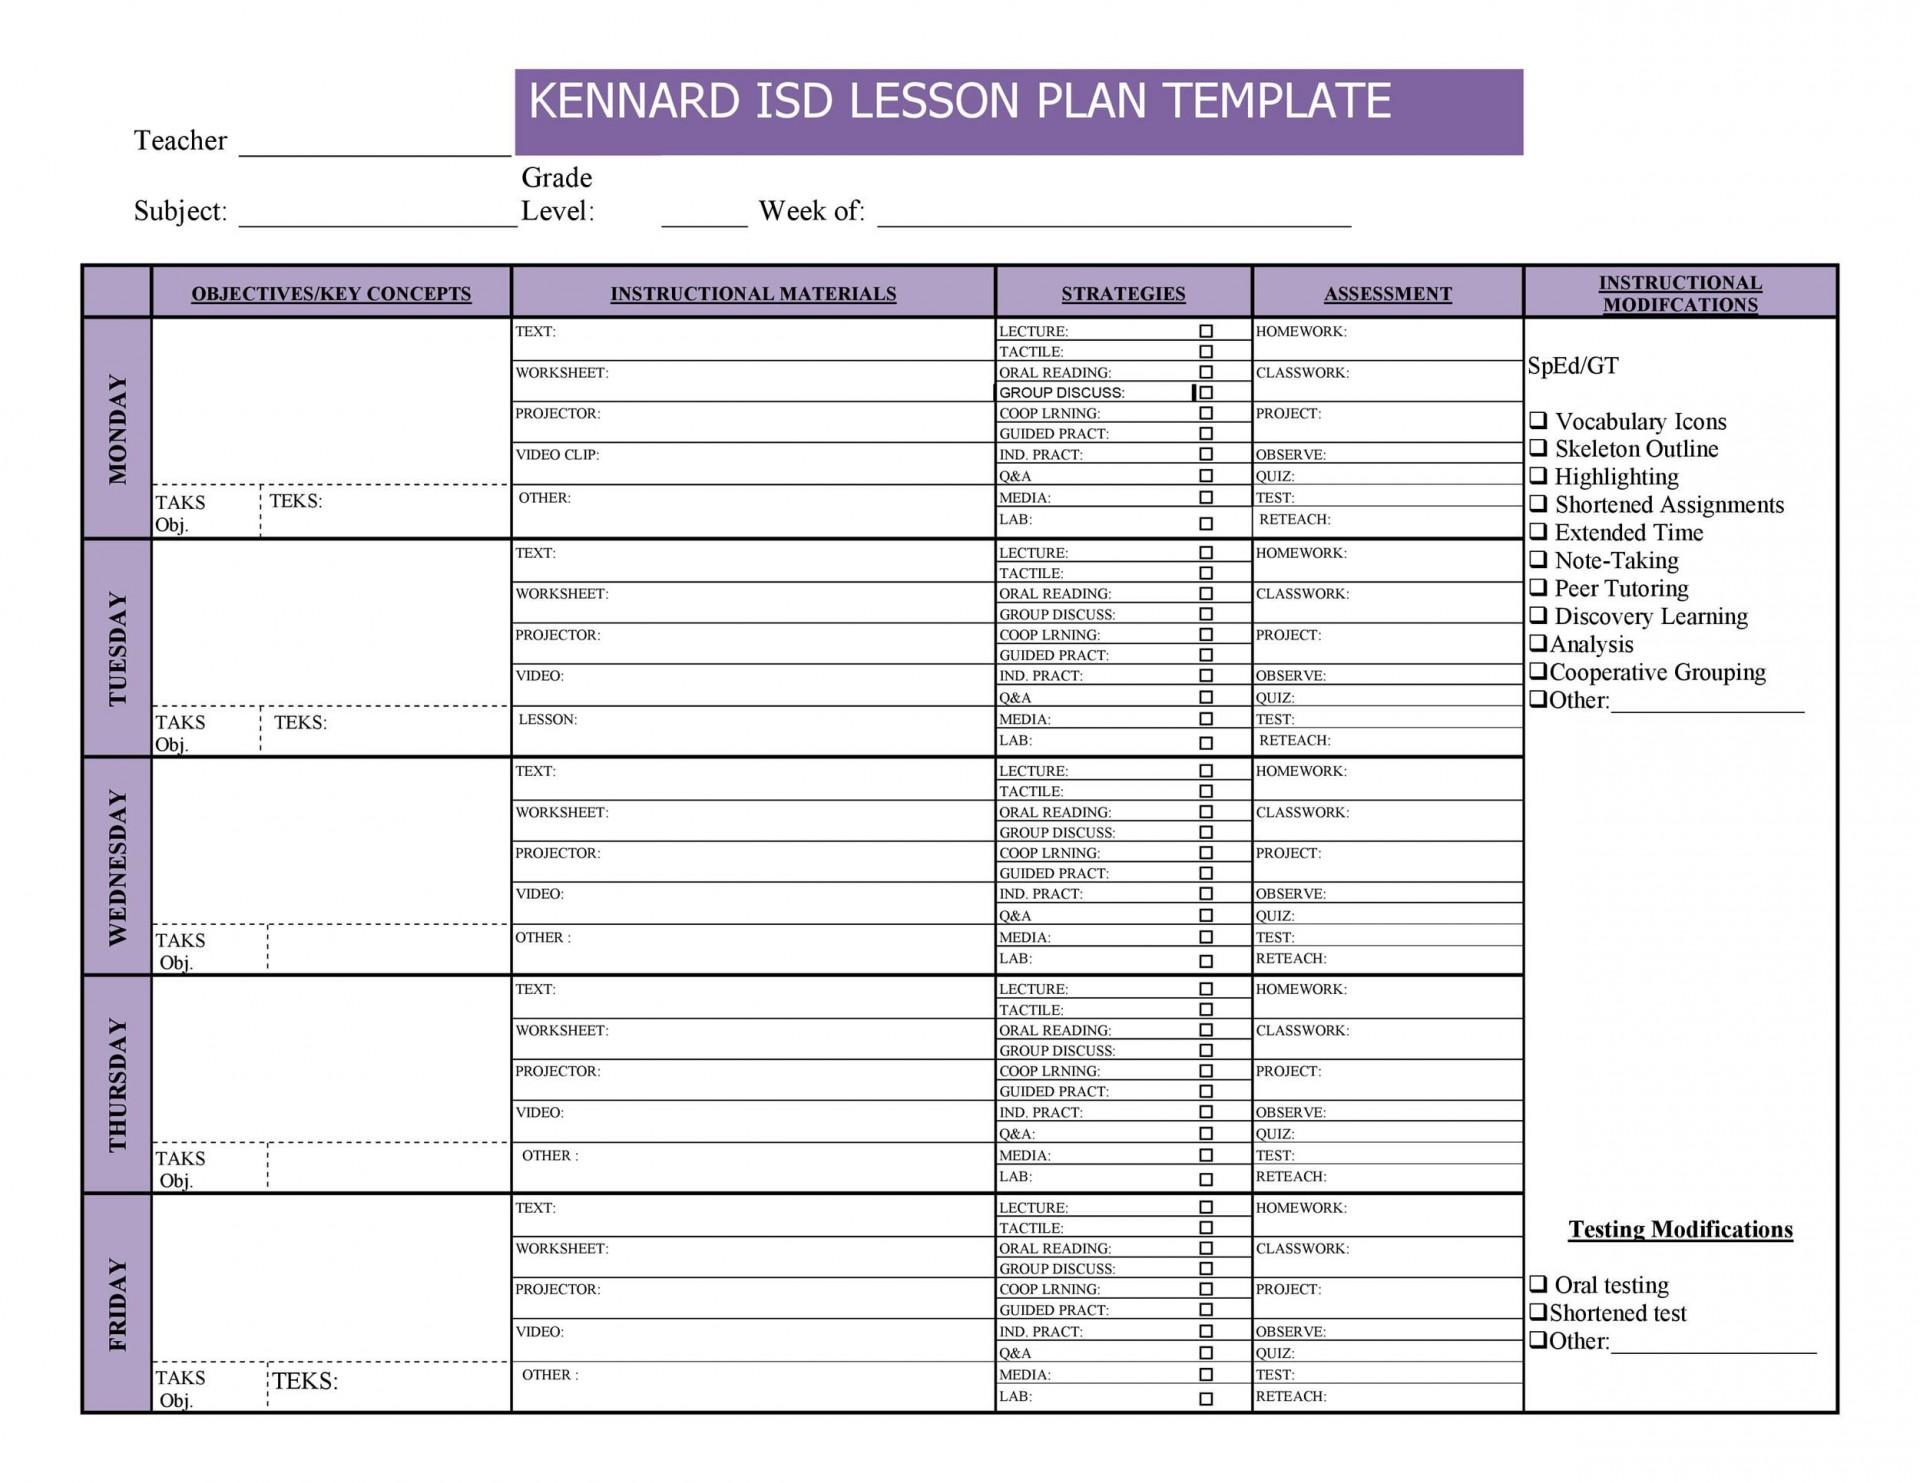 007 Unbelievable Weekly Lesson Plan Template Highest Quality  Blank Free High School Danielson Google Doc1920